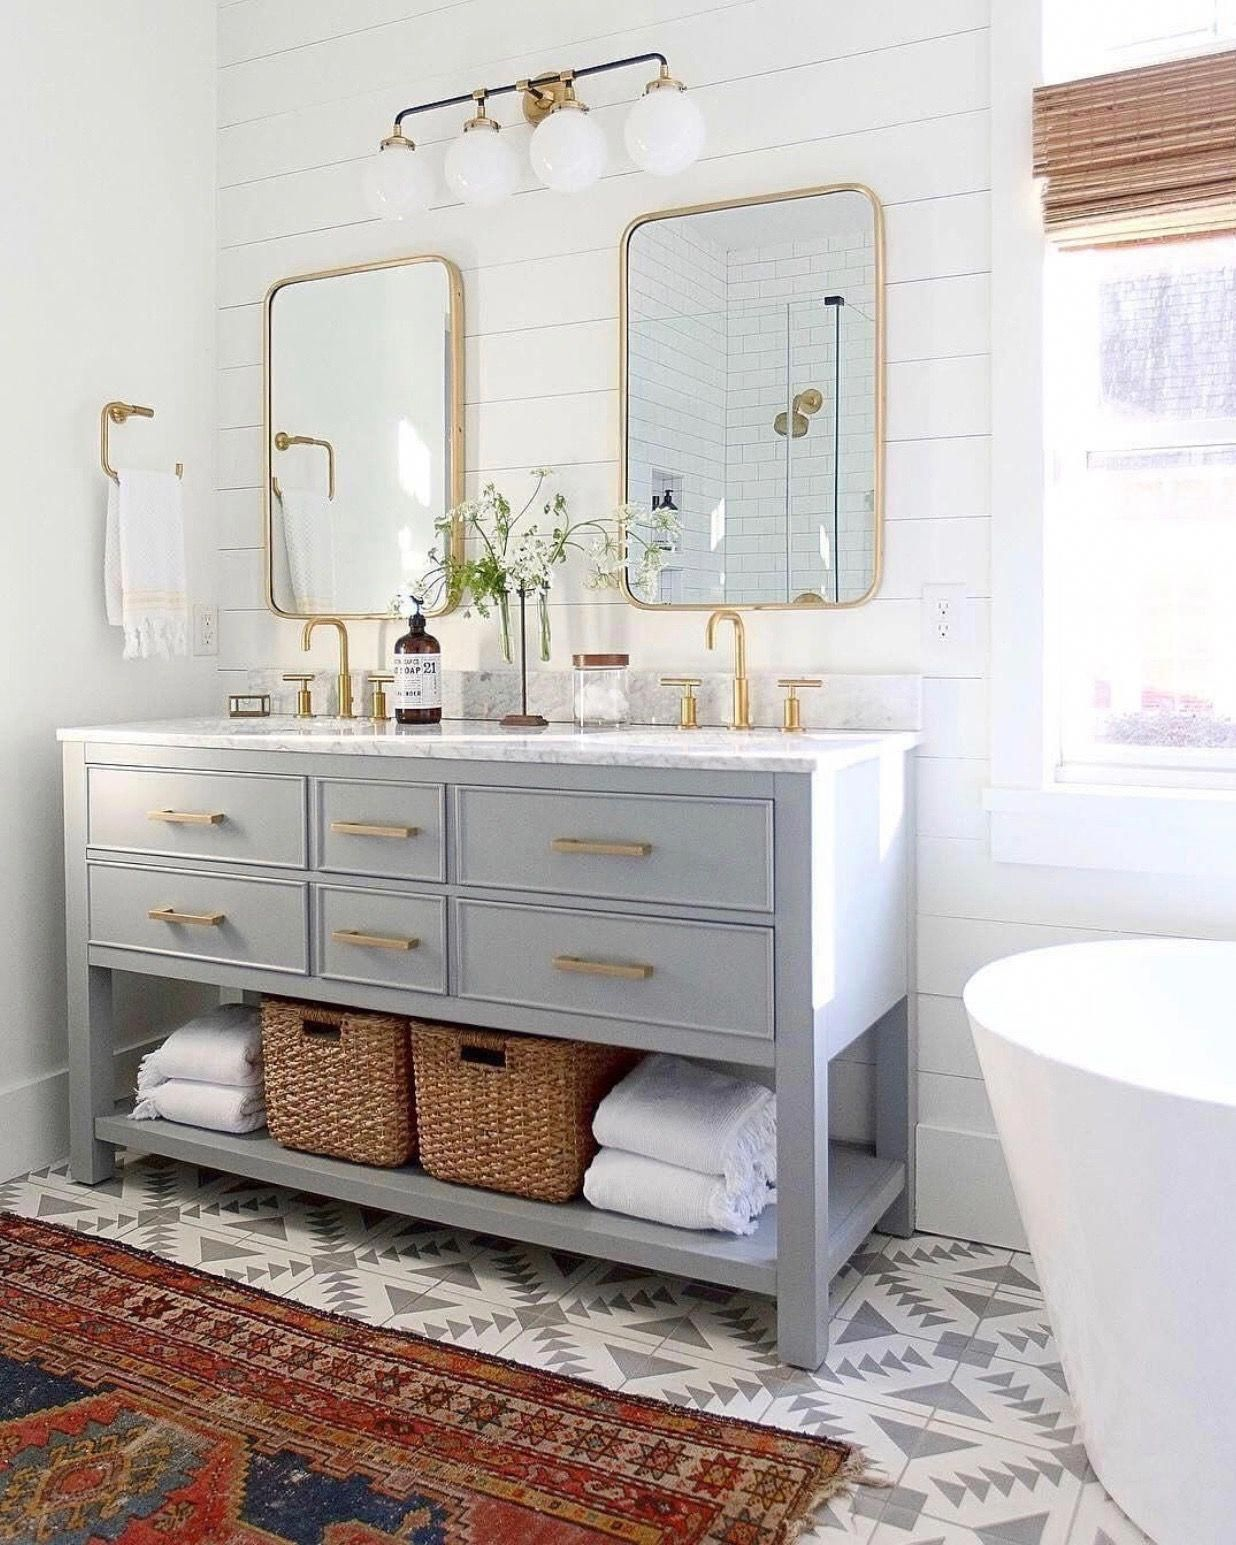 These inspiring bathroom mirror ideas will change the way you see